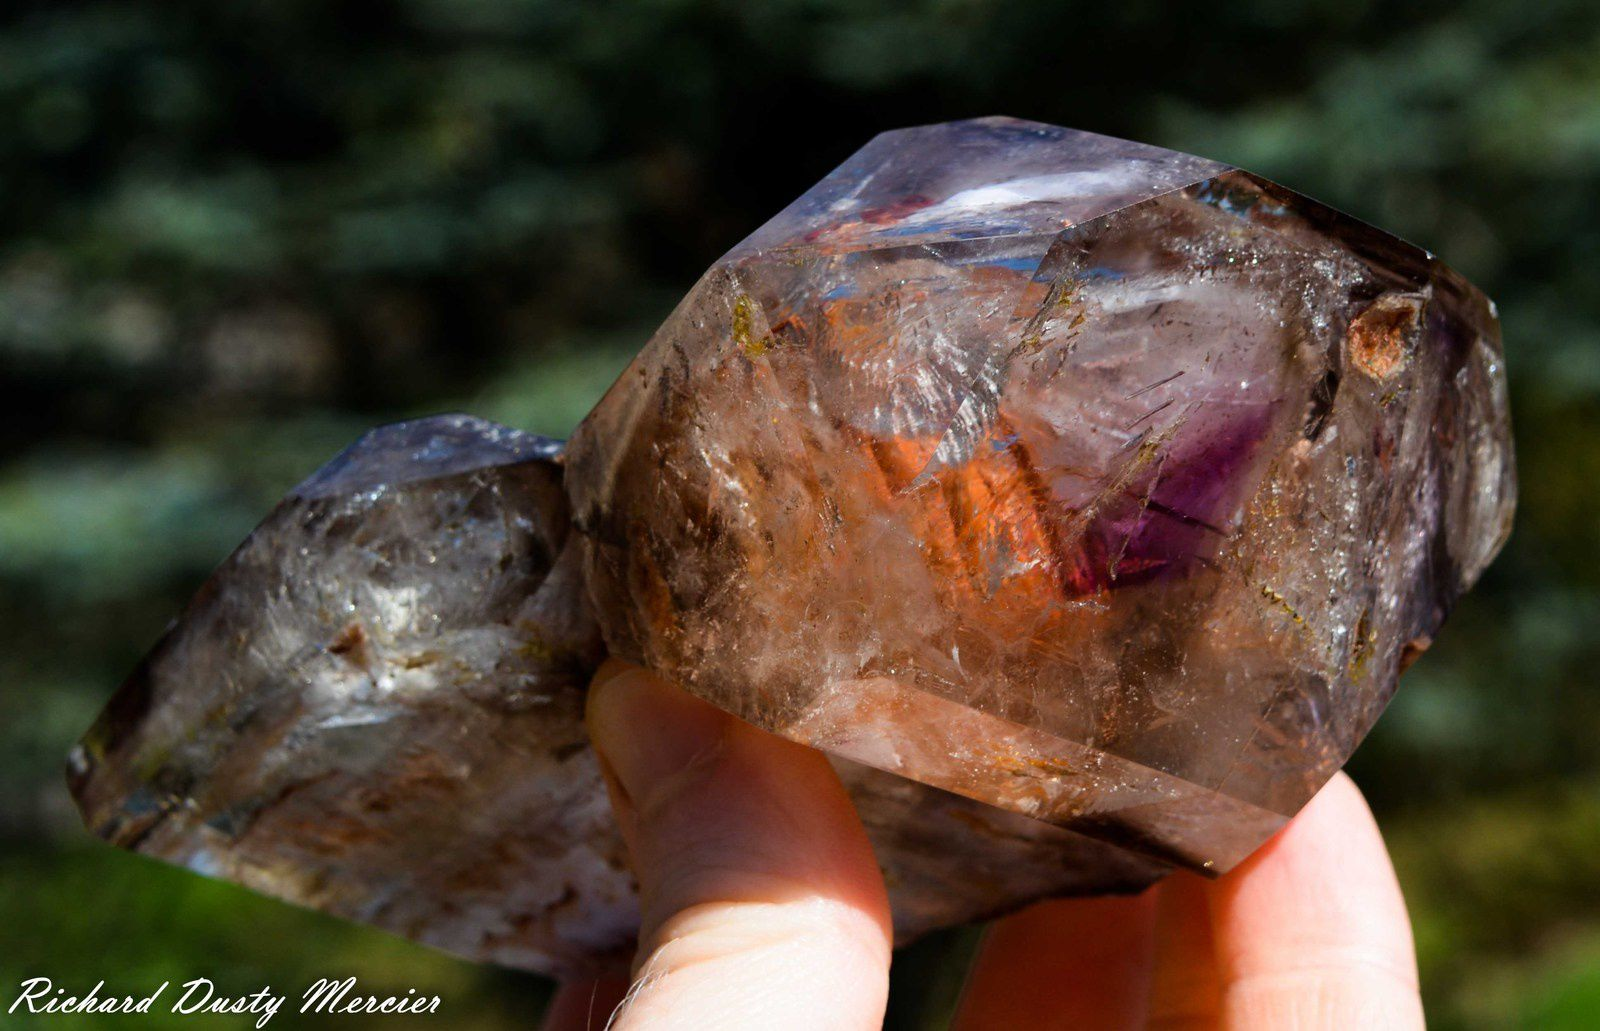 Scepter and Window Quartz (fenêtre et Sceptre) Amethyst and Smoky with Enhydro Water (inclusions d'eau) from Minas Gerais, Brasil